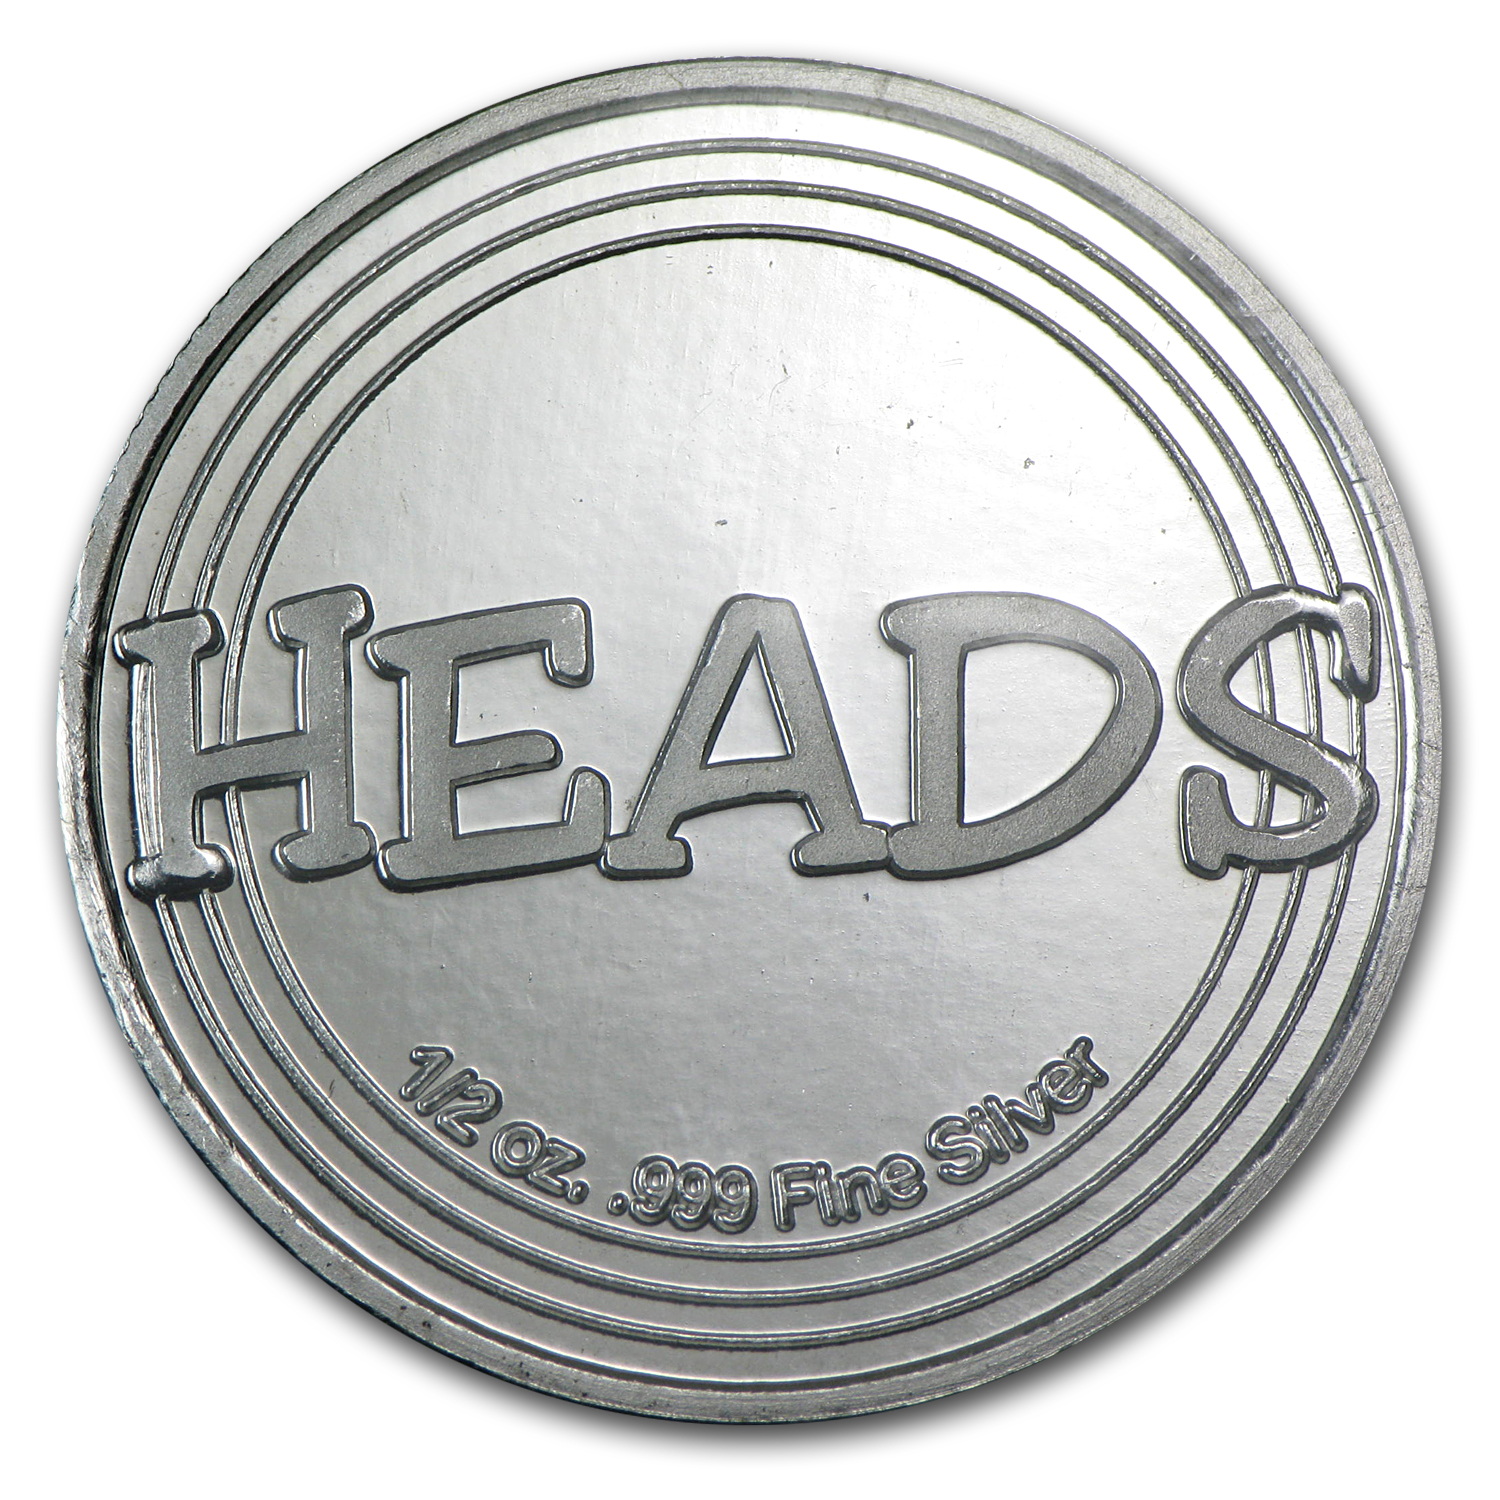 1/2 oz Silver Round - Heads or Tails Novelty